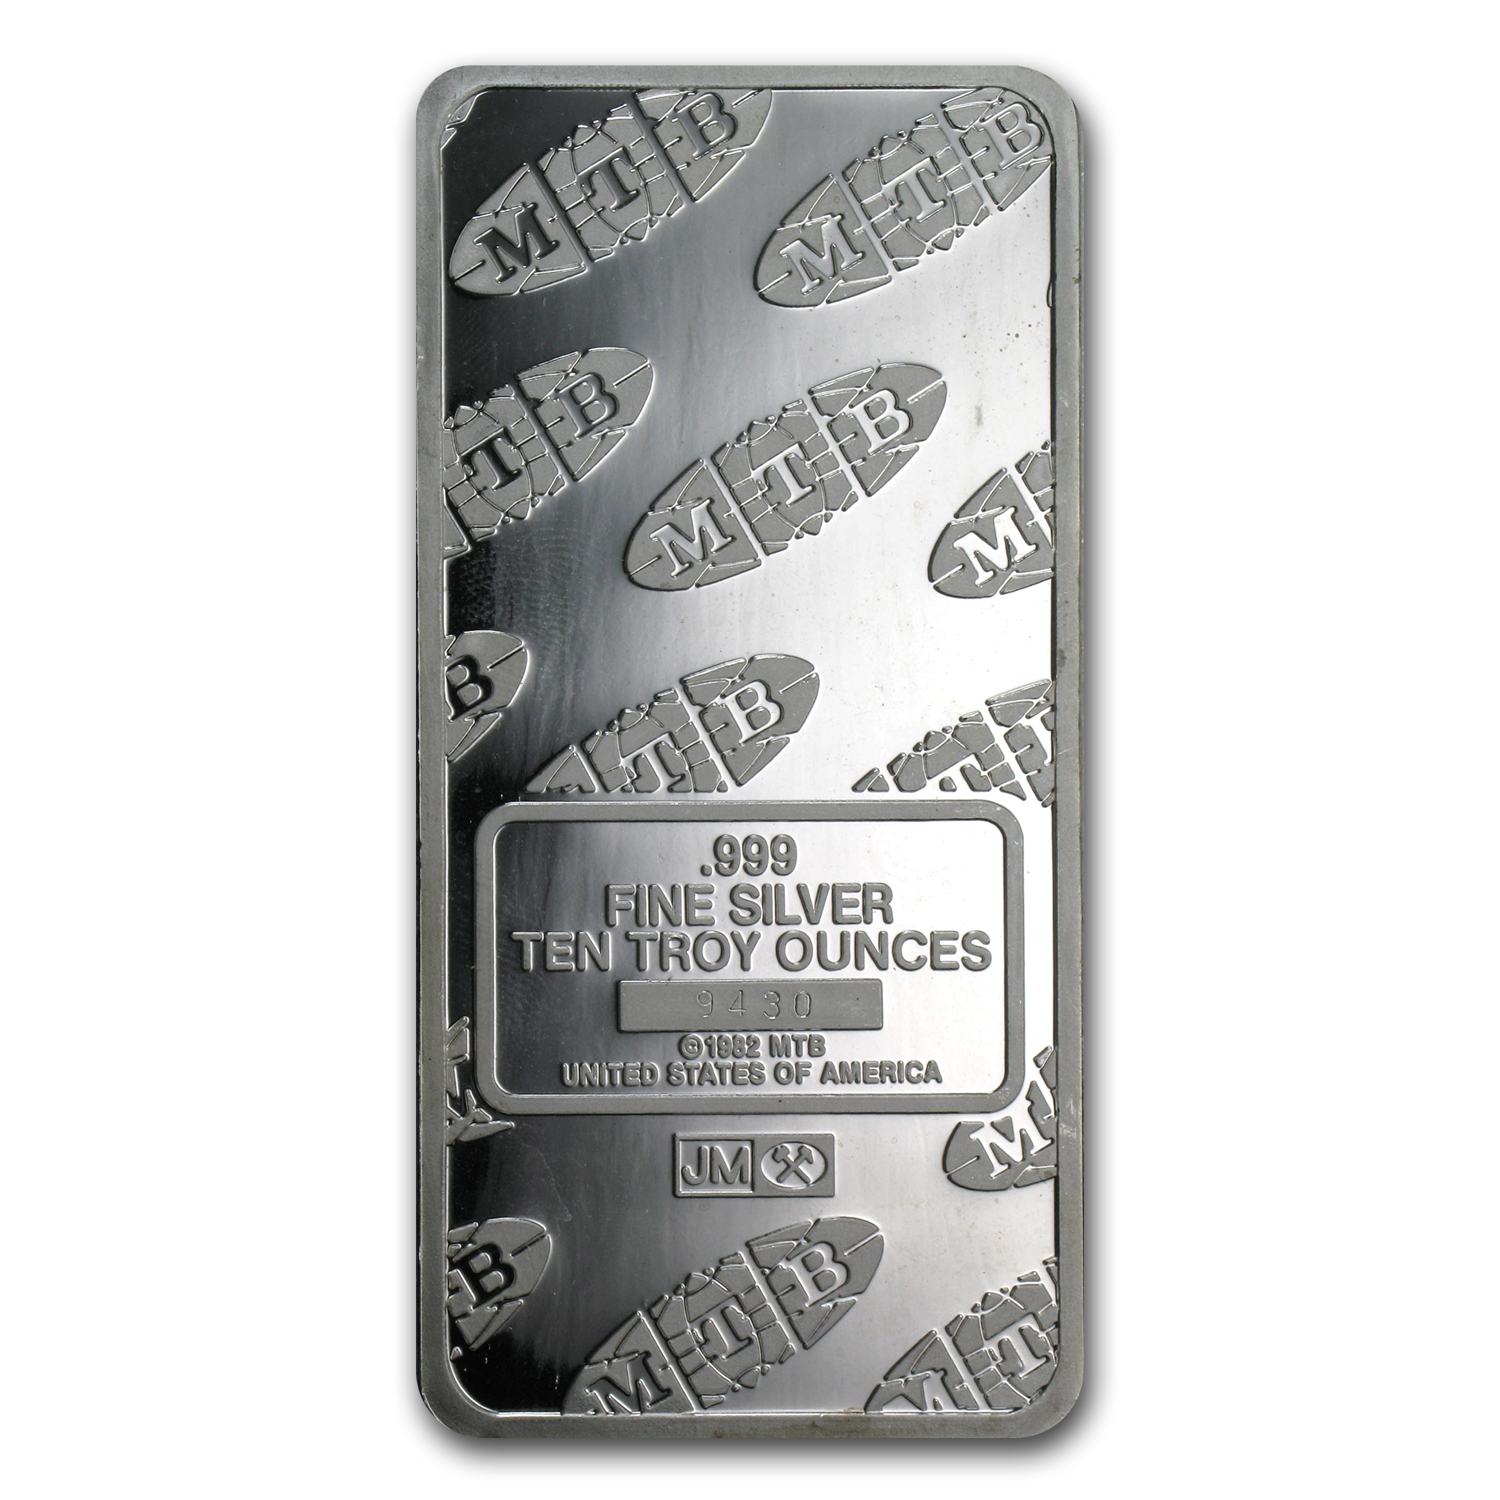 10 oz Silver Bars - Johnson Matthey (Statue of Liberty/MTB)